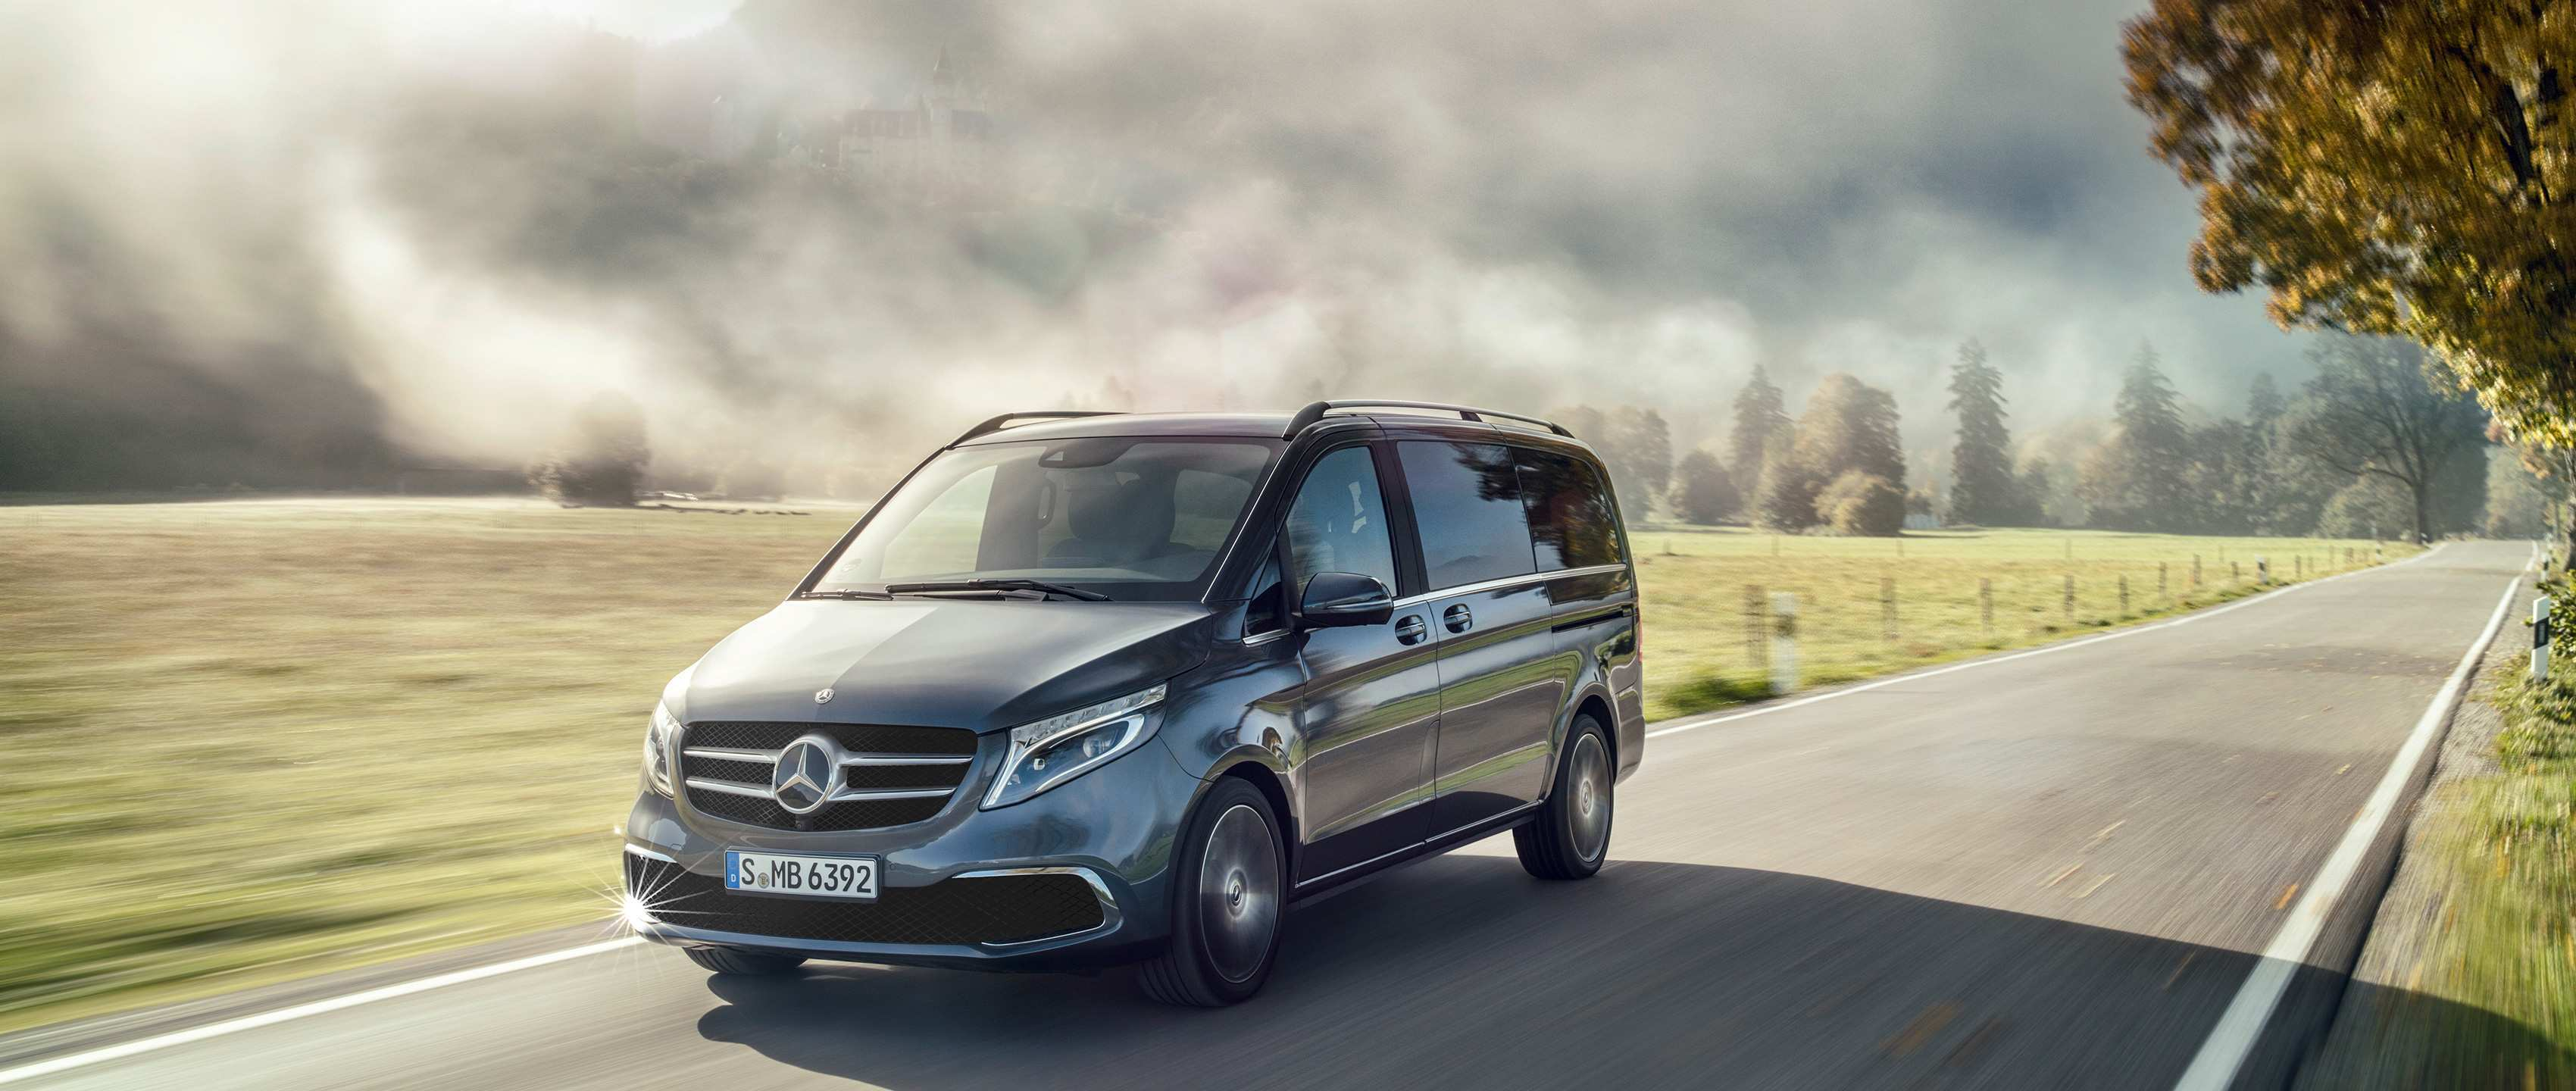 32 All New Mercedes V Klasse 2019 Specs